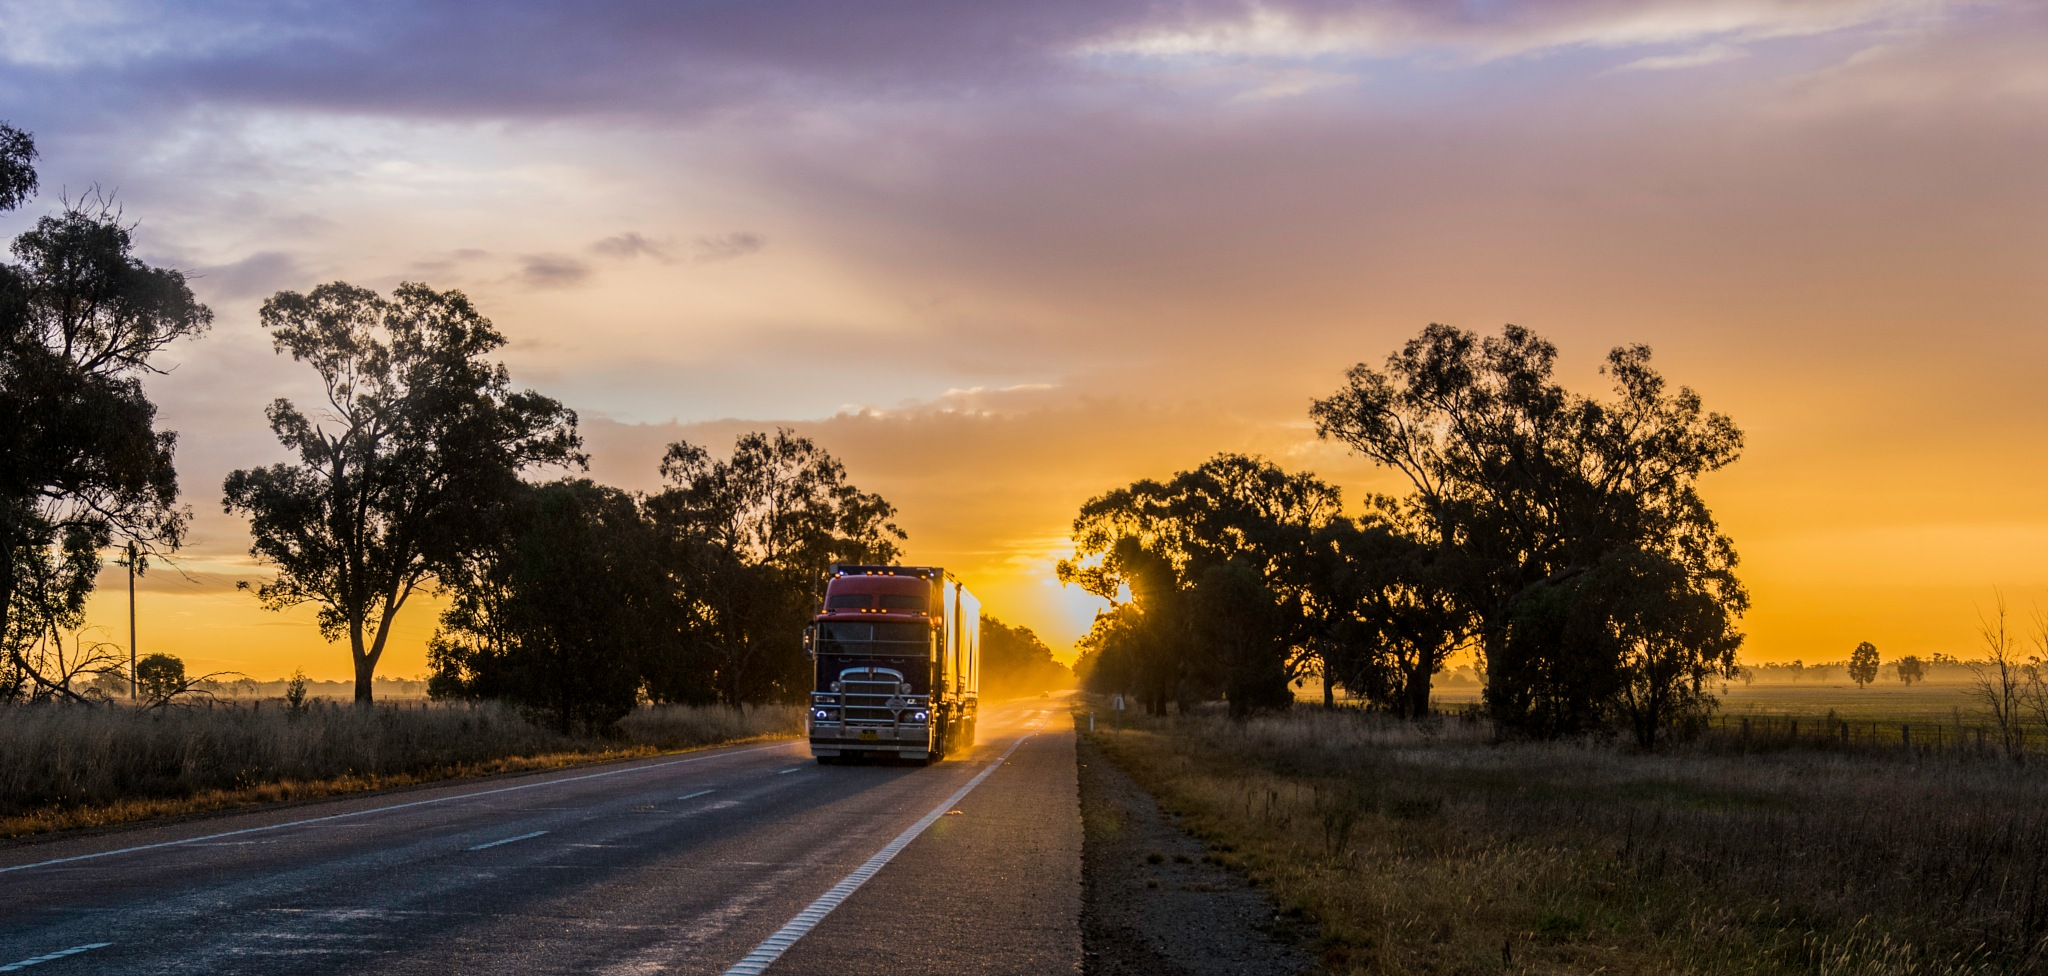 Sun setting on the Highway by Taylor Allcock